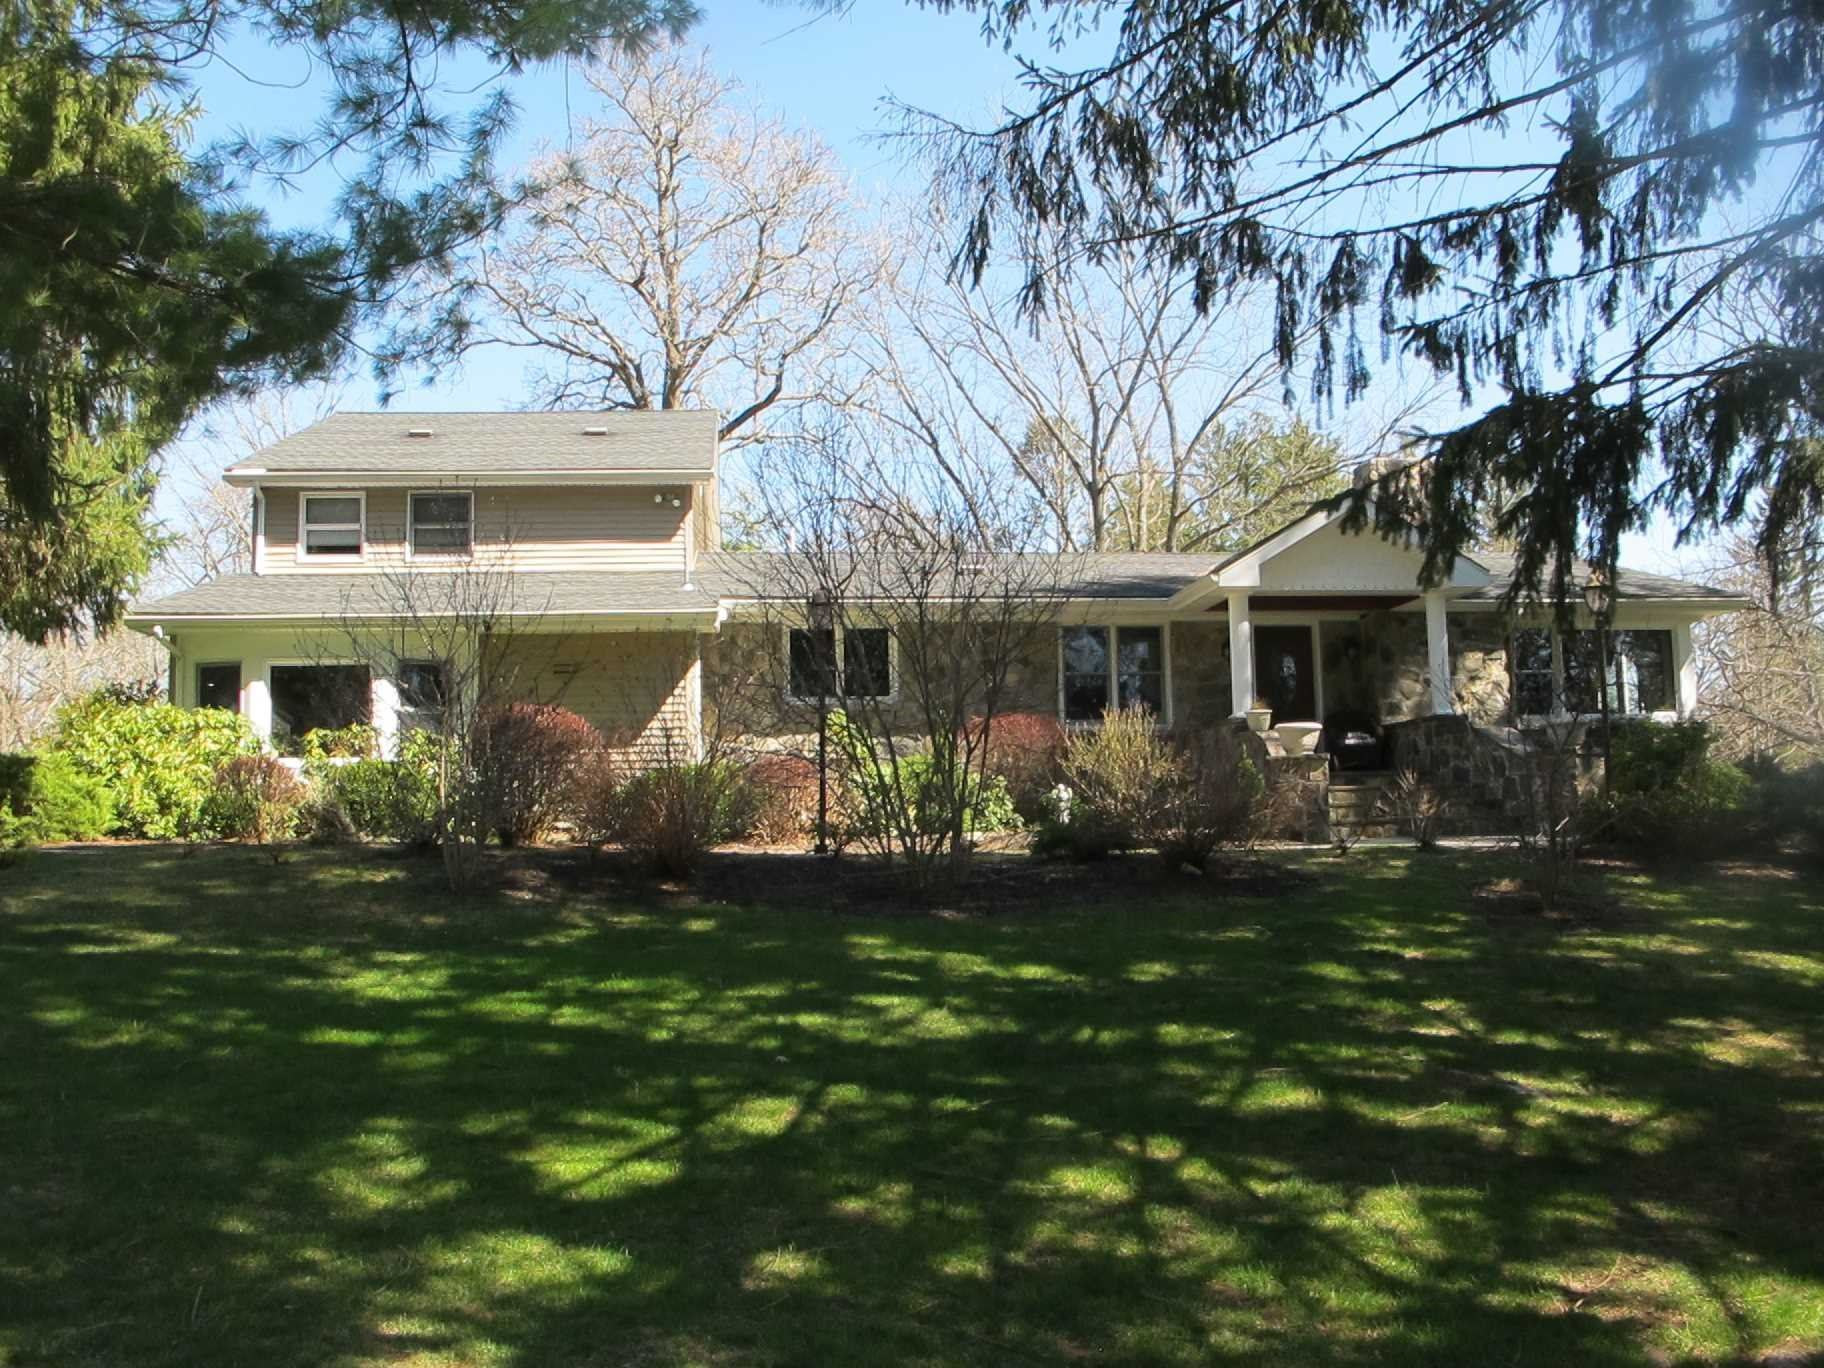 1471 ROUTE 376, Wappingers Falls, NY 12590 - #: 399099